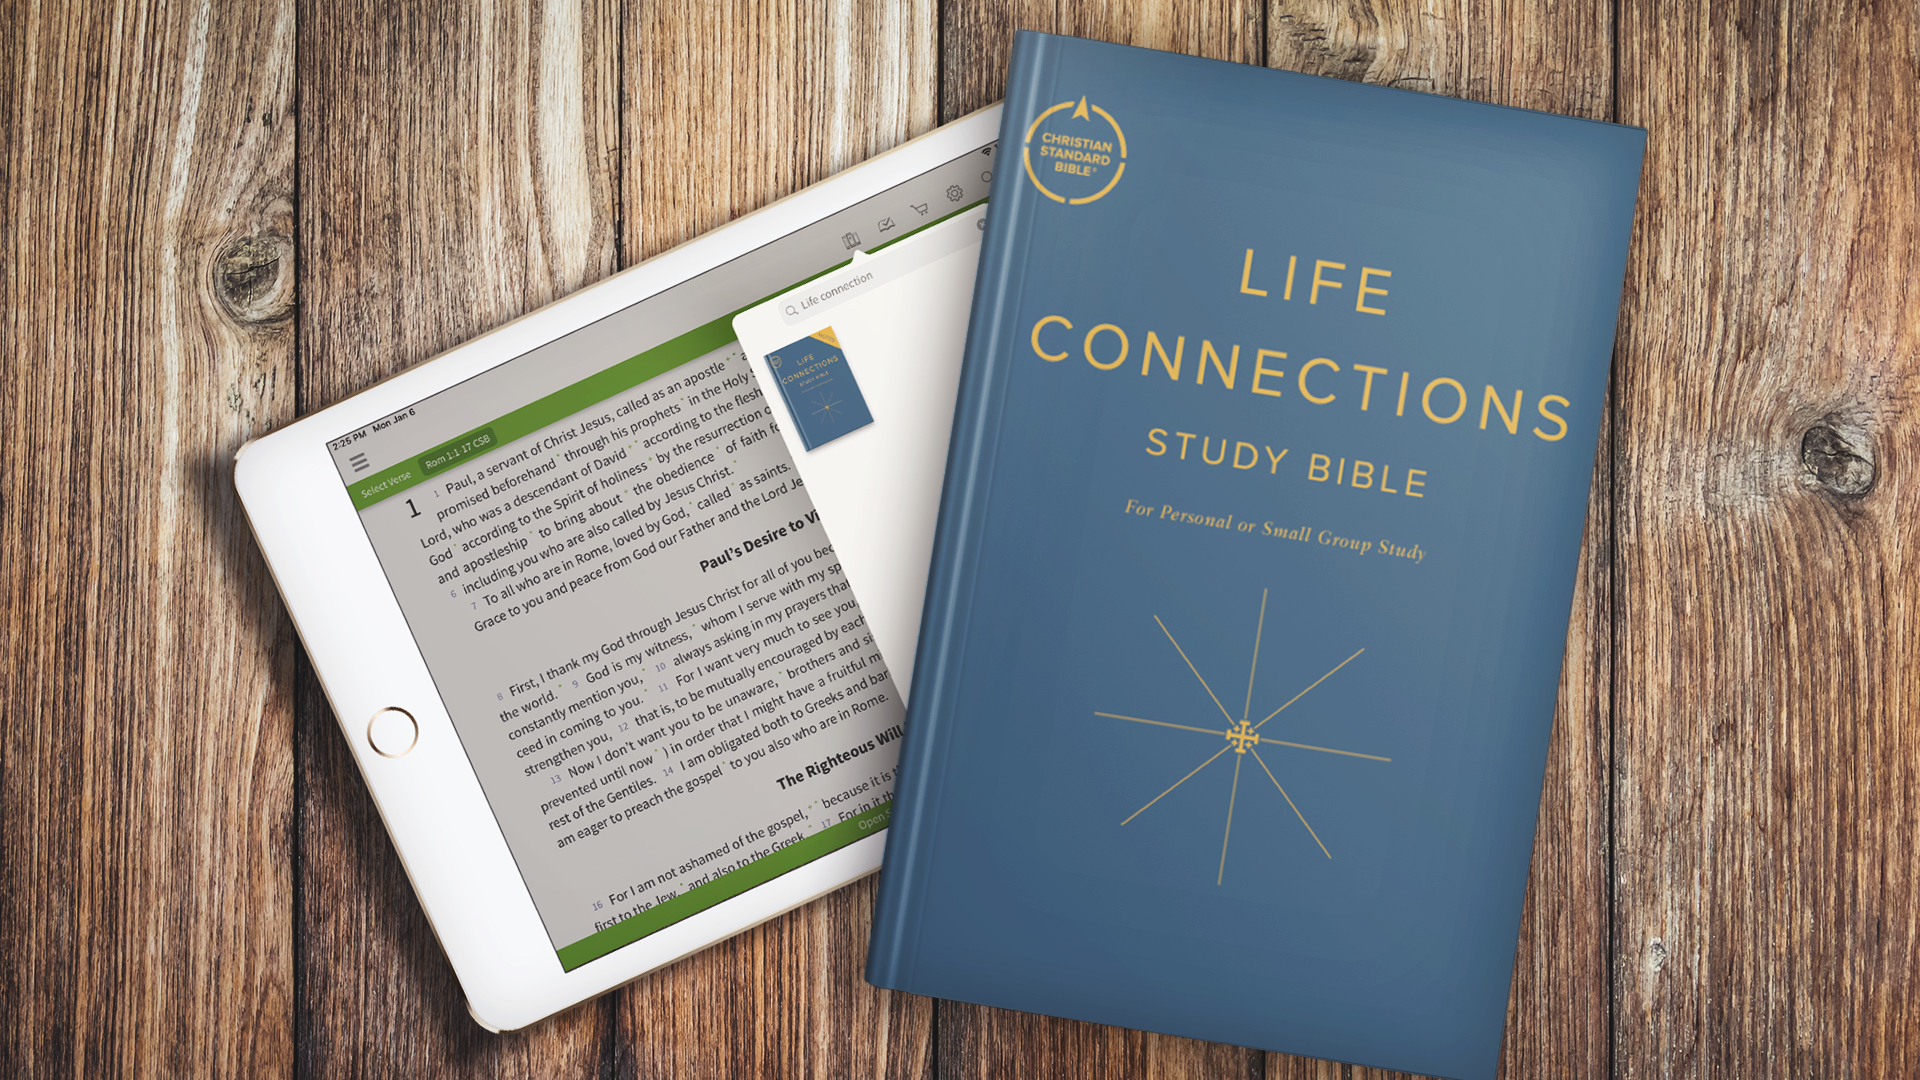 Life Connections Study Bible